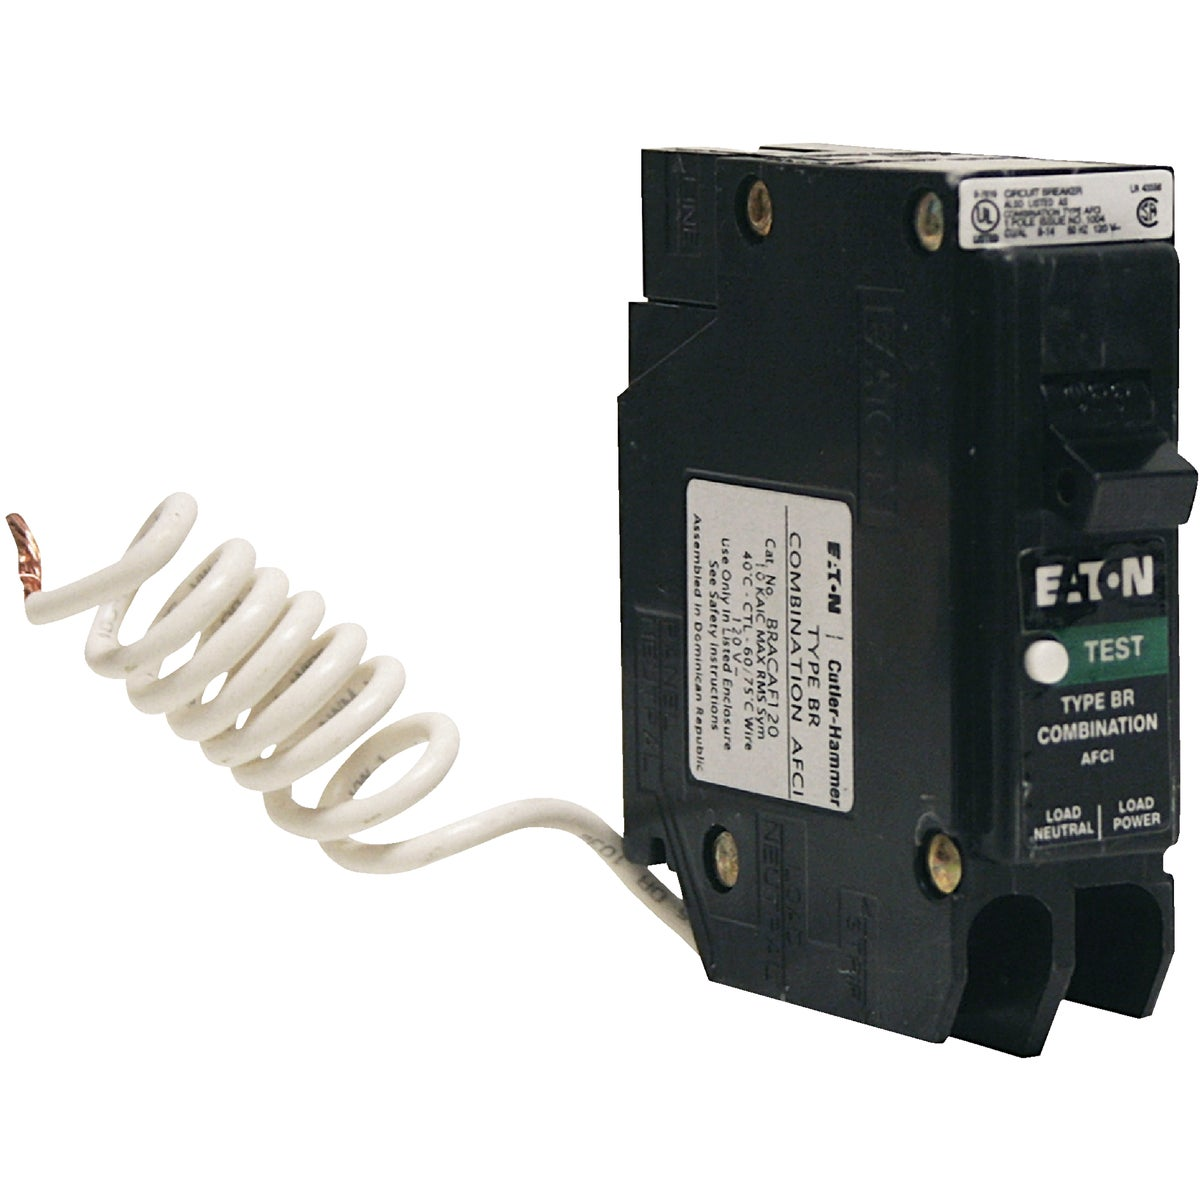 20A AFCI CIRCUIT BREAKER - BRCAF120 by Eaton Corporation